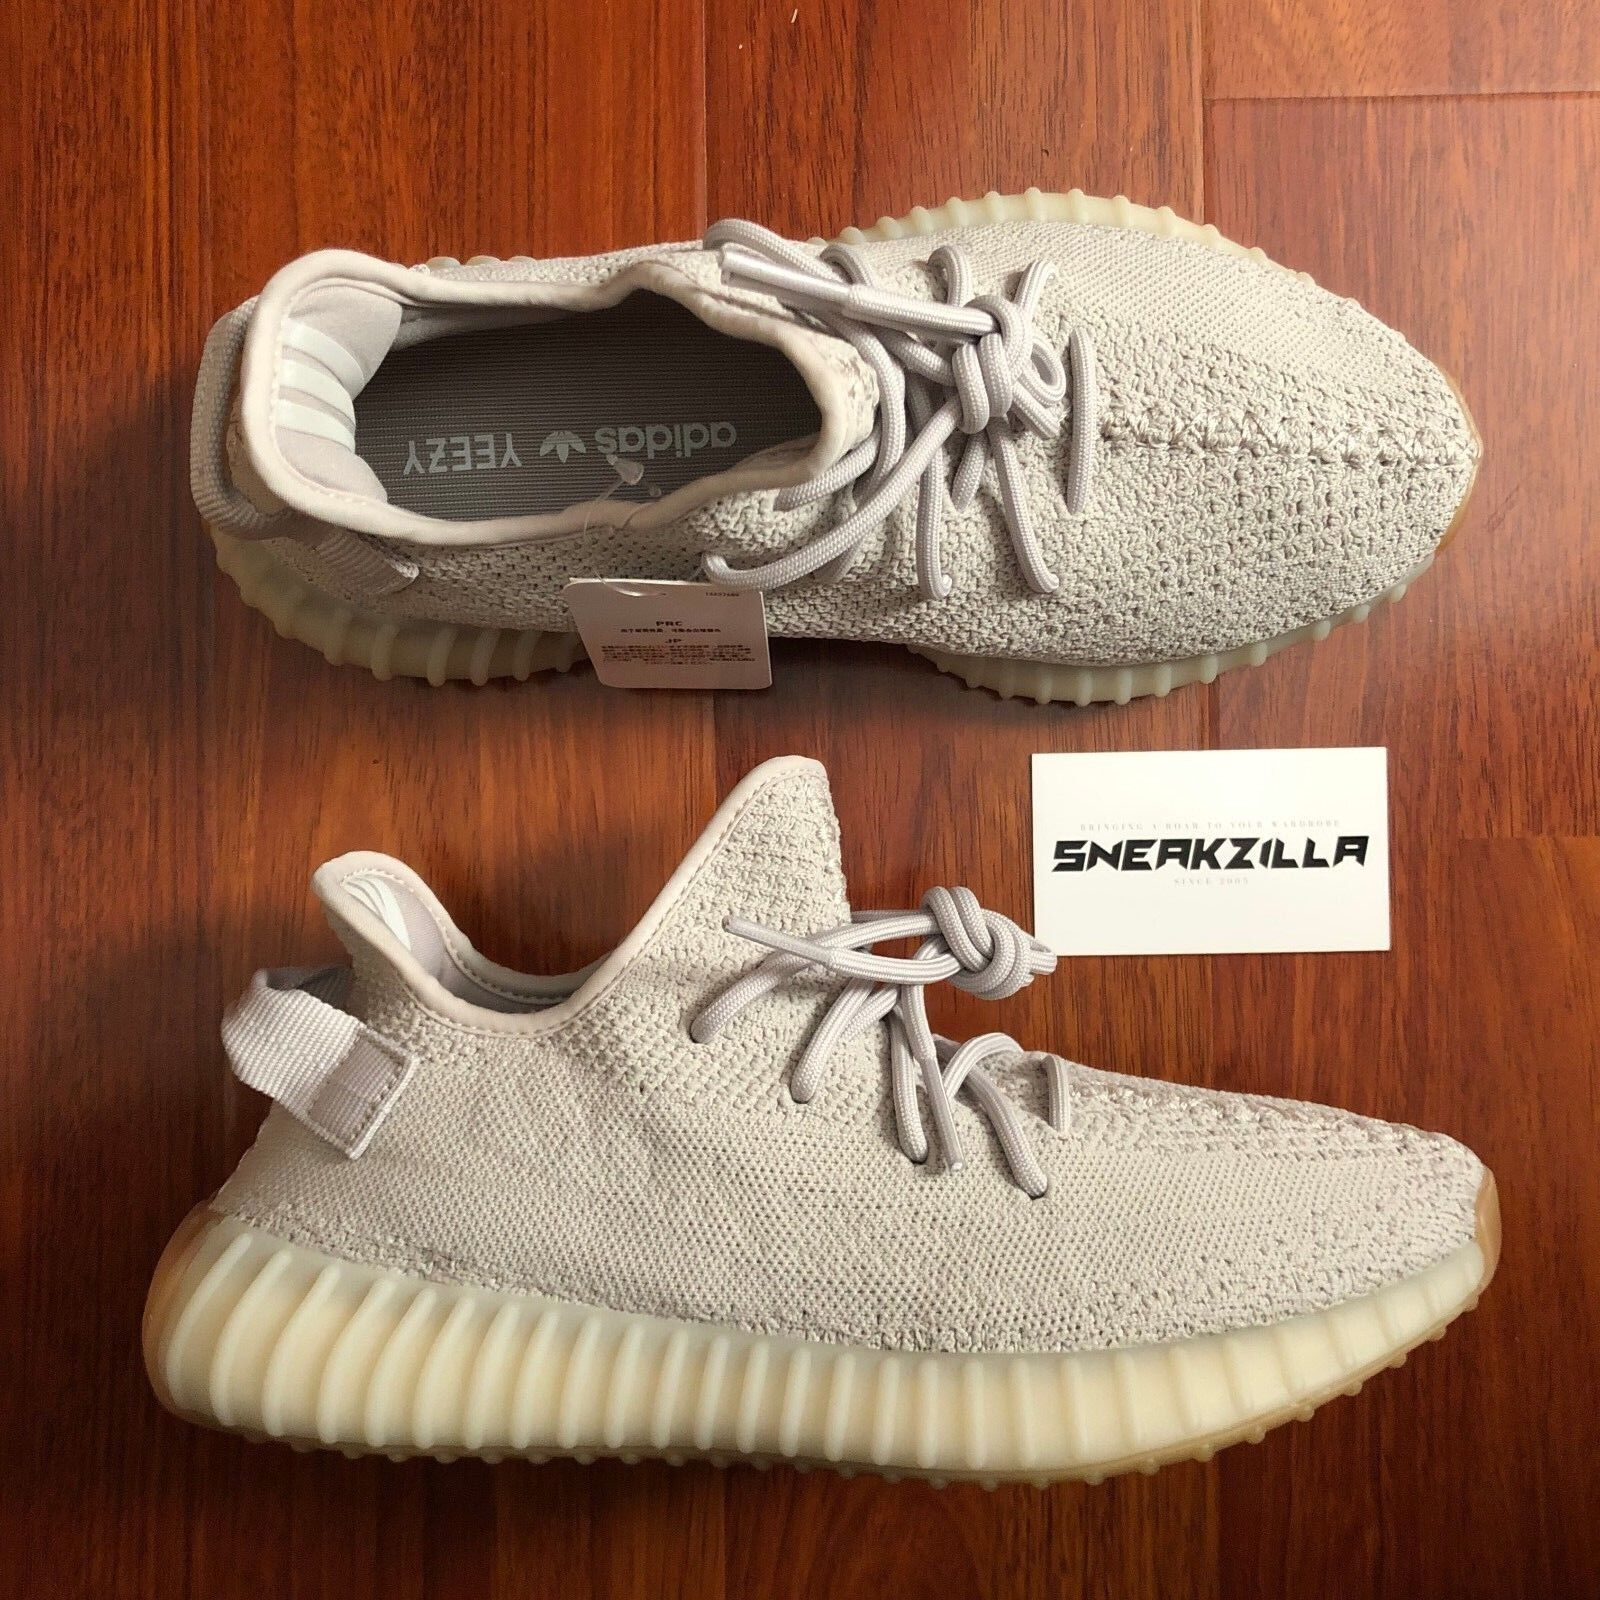 Adidas Yeezy Boost 350 V2 SESAME F99710 YZY Kanye 100% AUTHENTIC lot Sz 5 9